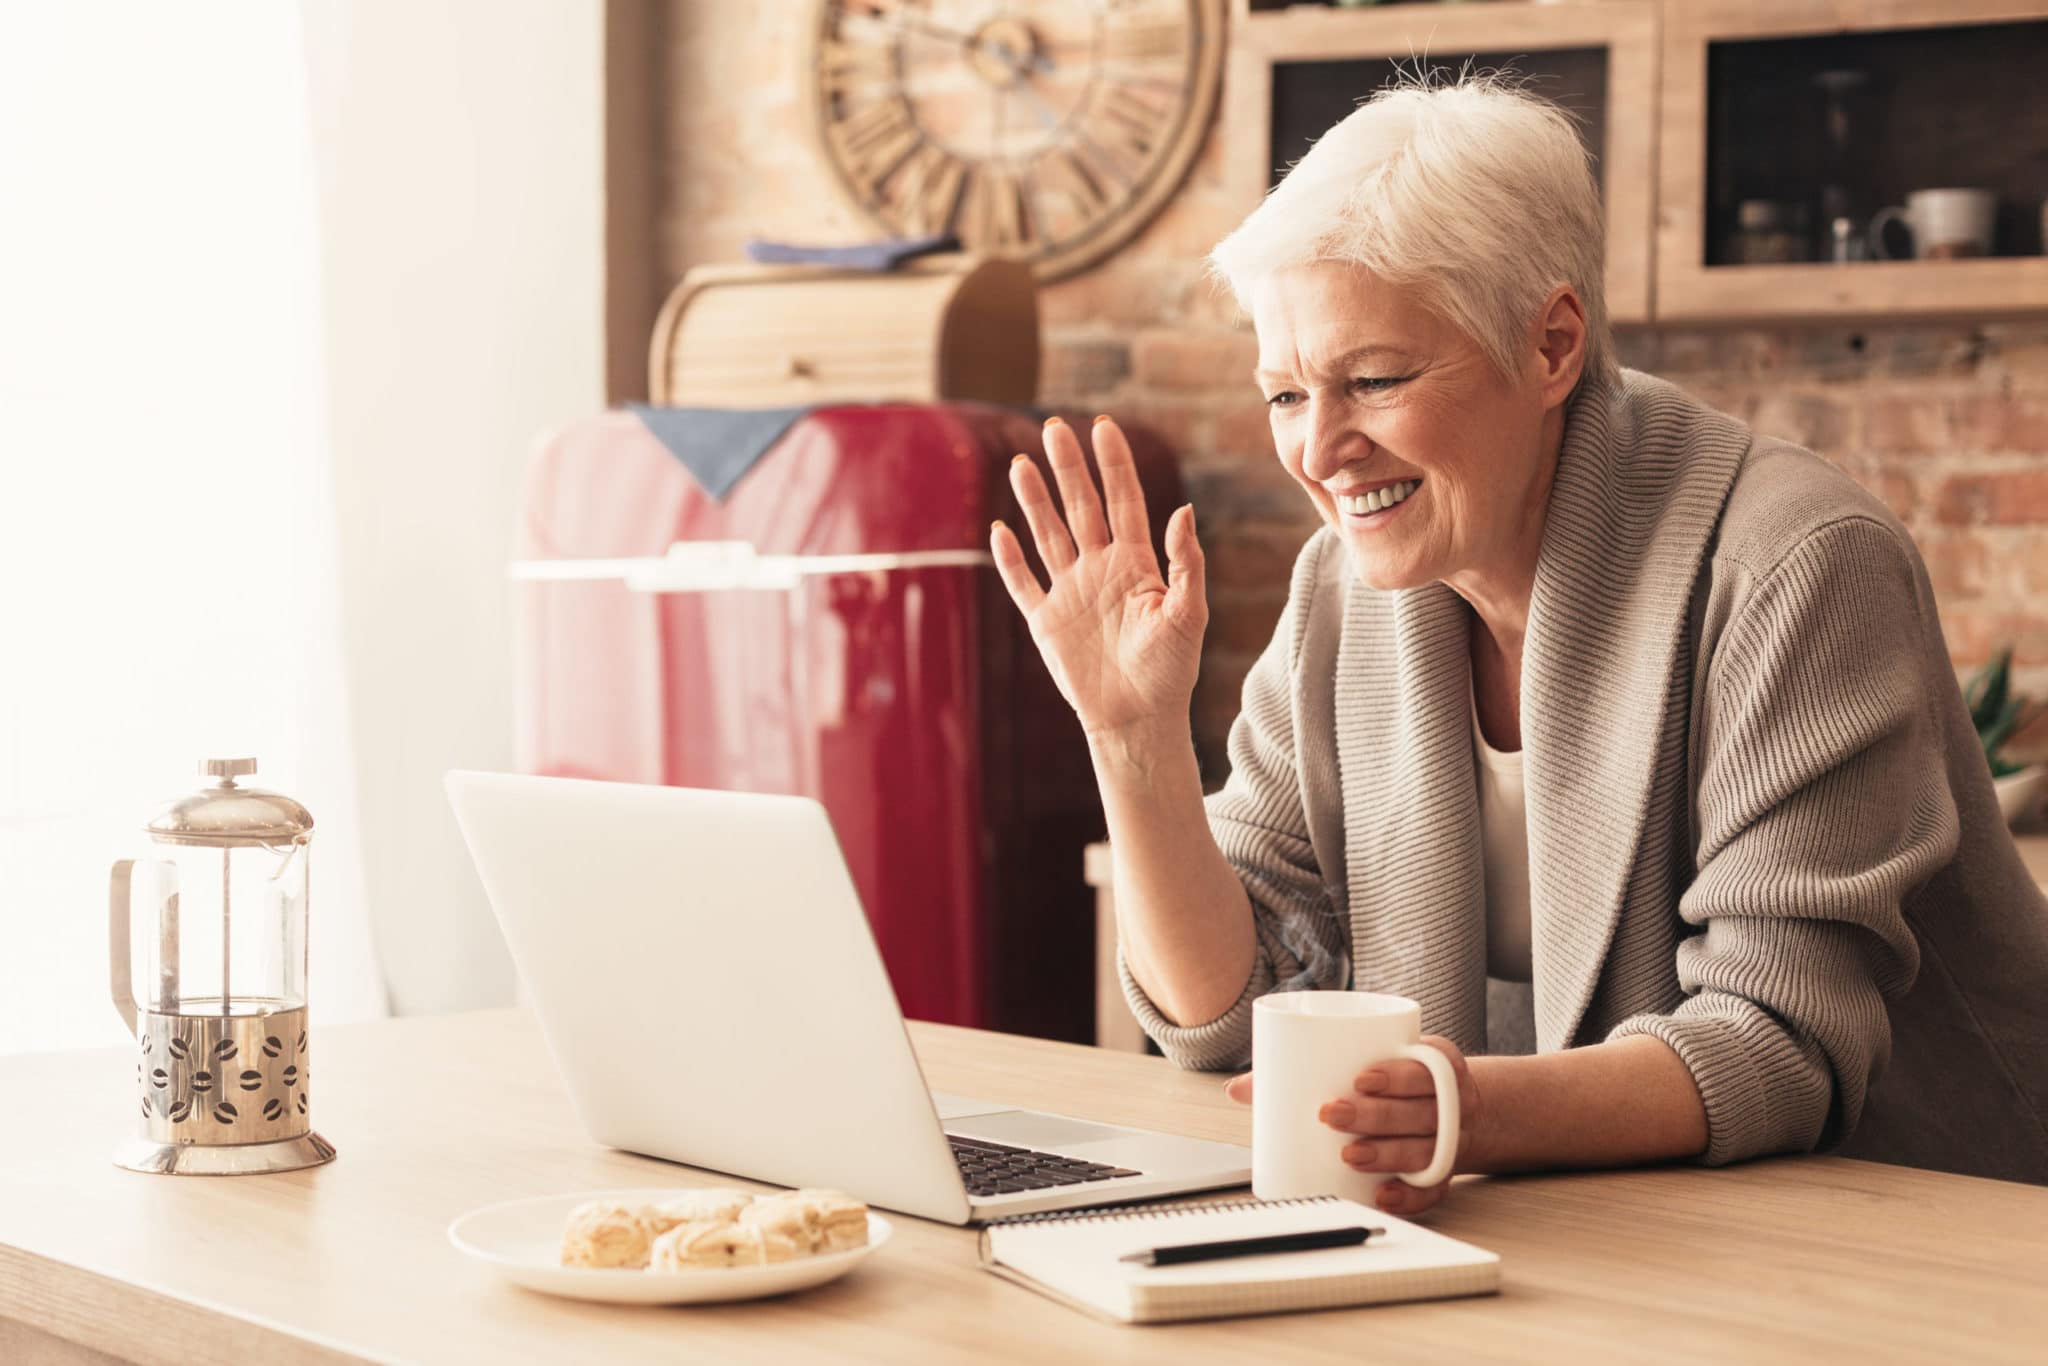 Elderly woman making video call on laptop